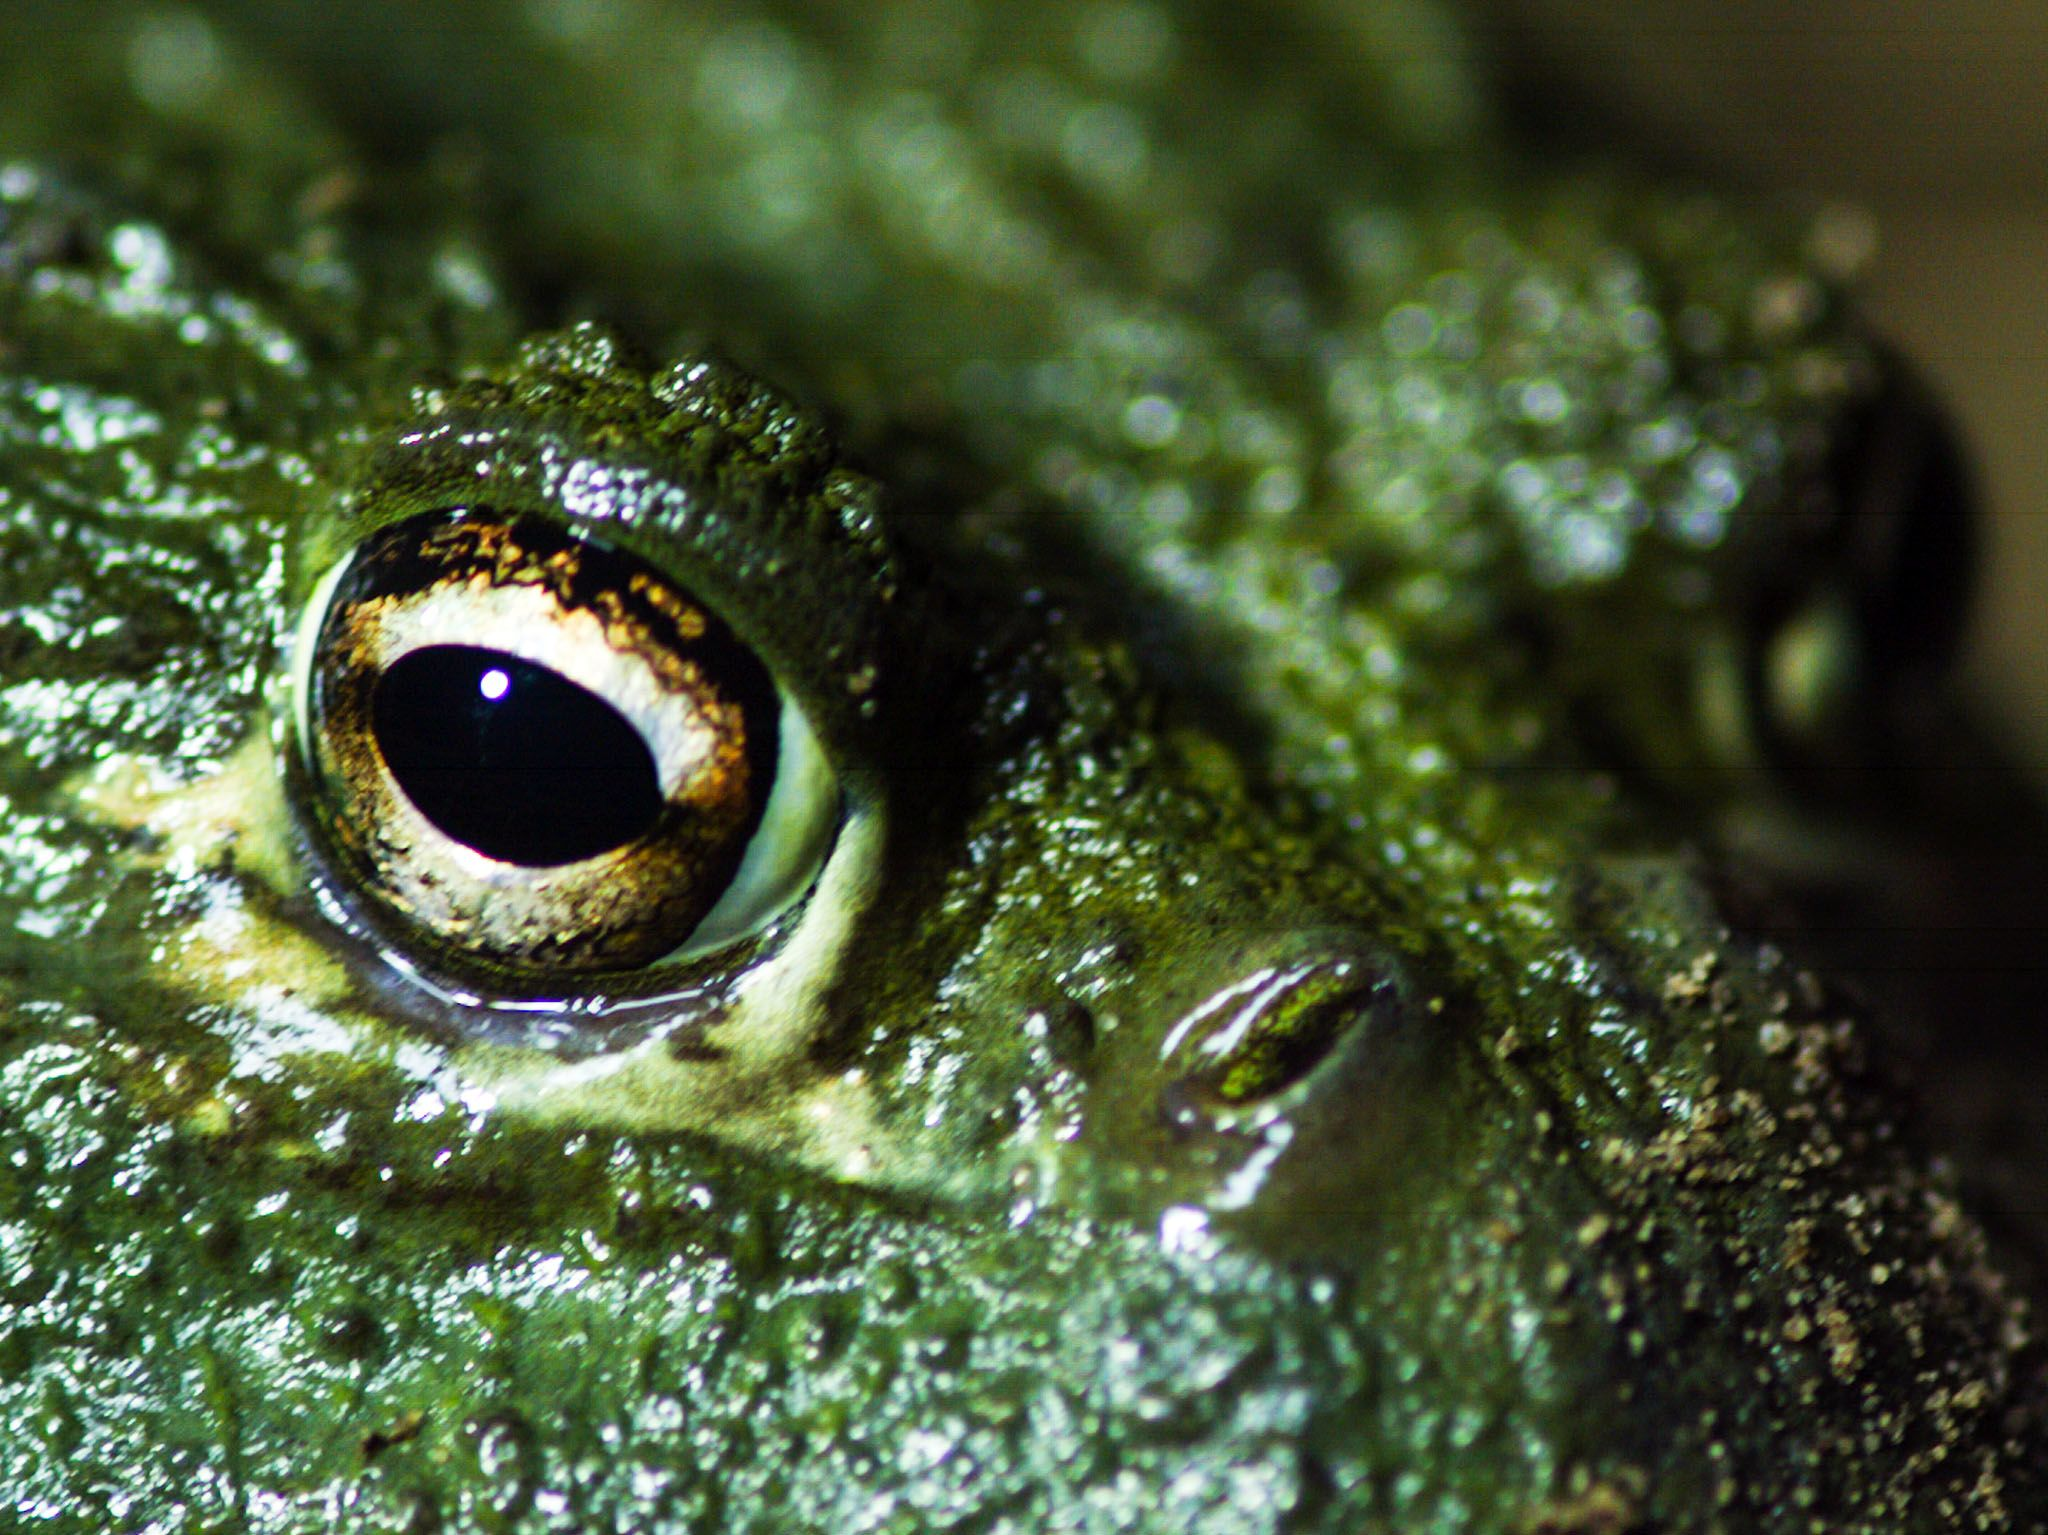 South Africa: African bullfrog (Pyxicephalus adspersus) face, revealing it's large eyes. African... [Photo of the day - July 2017]